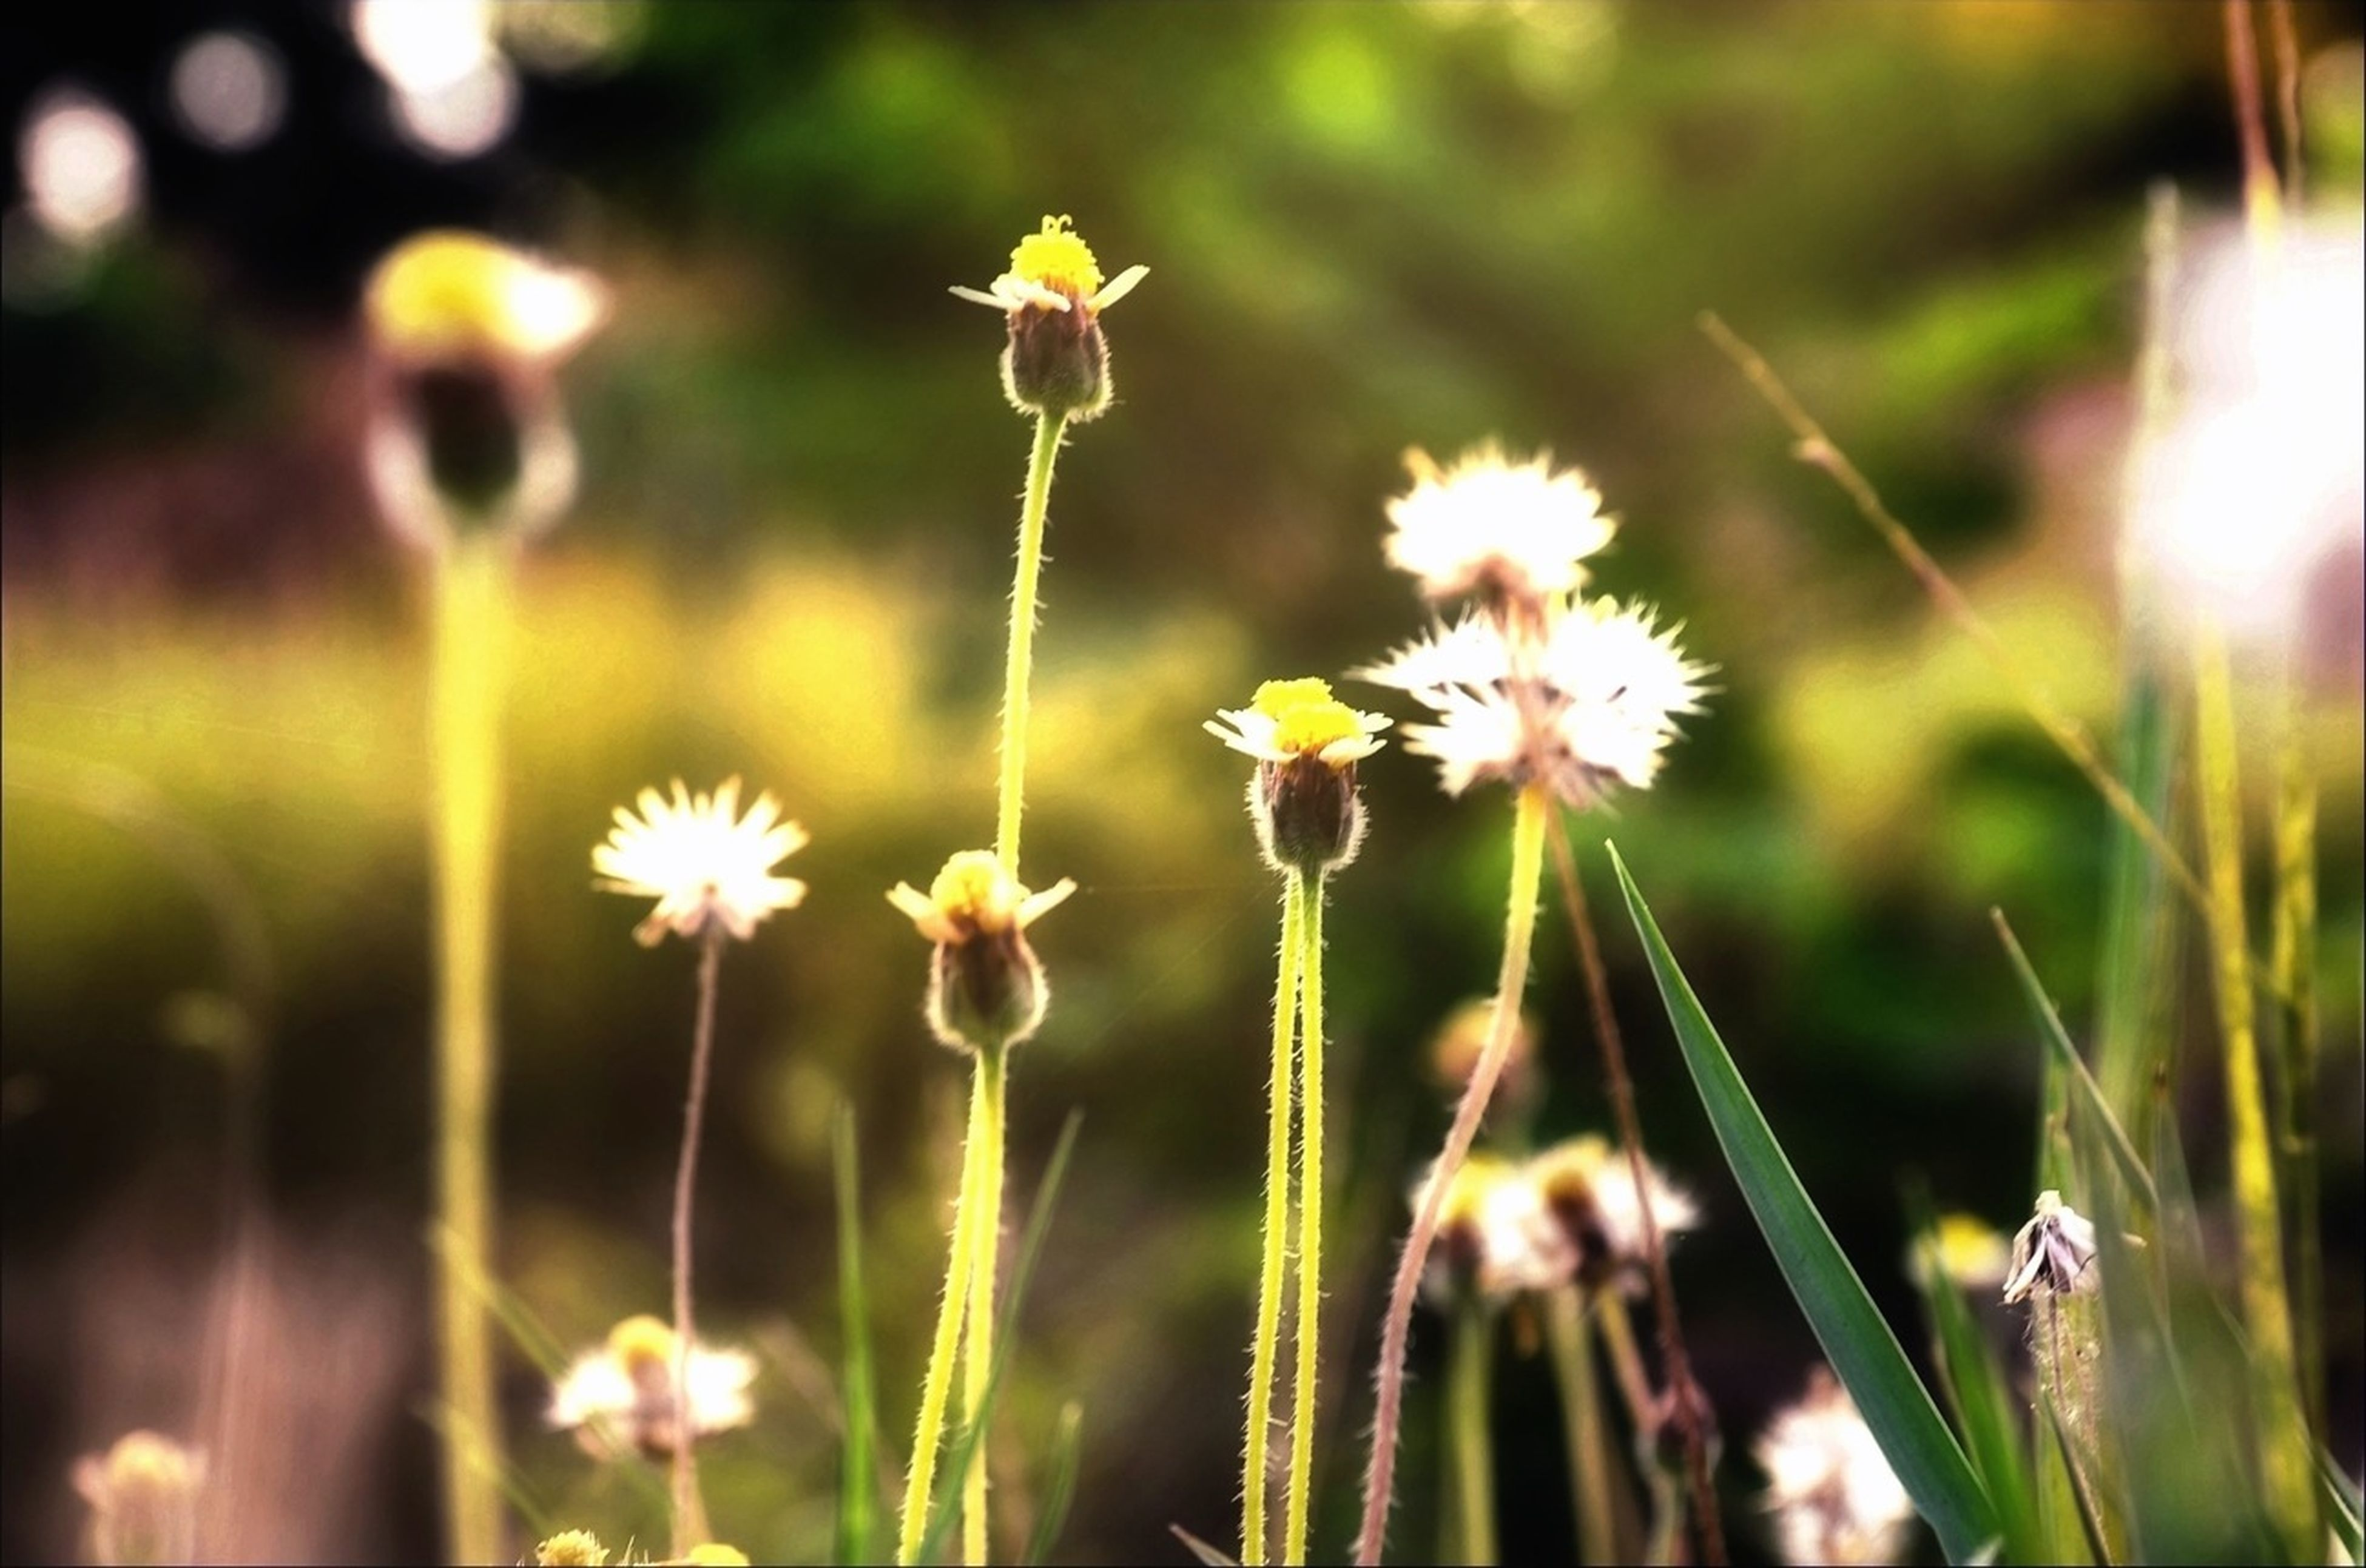 flower, fragility, freshness, growth, petal, focus on foreground, beauty in nature, flower head, plant, stem, nature, close-up, blooming, field, selective focus, wildflower, in bloom, botany, outdoors, white color